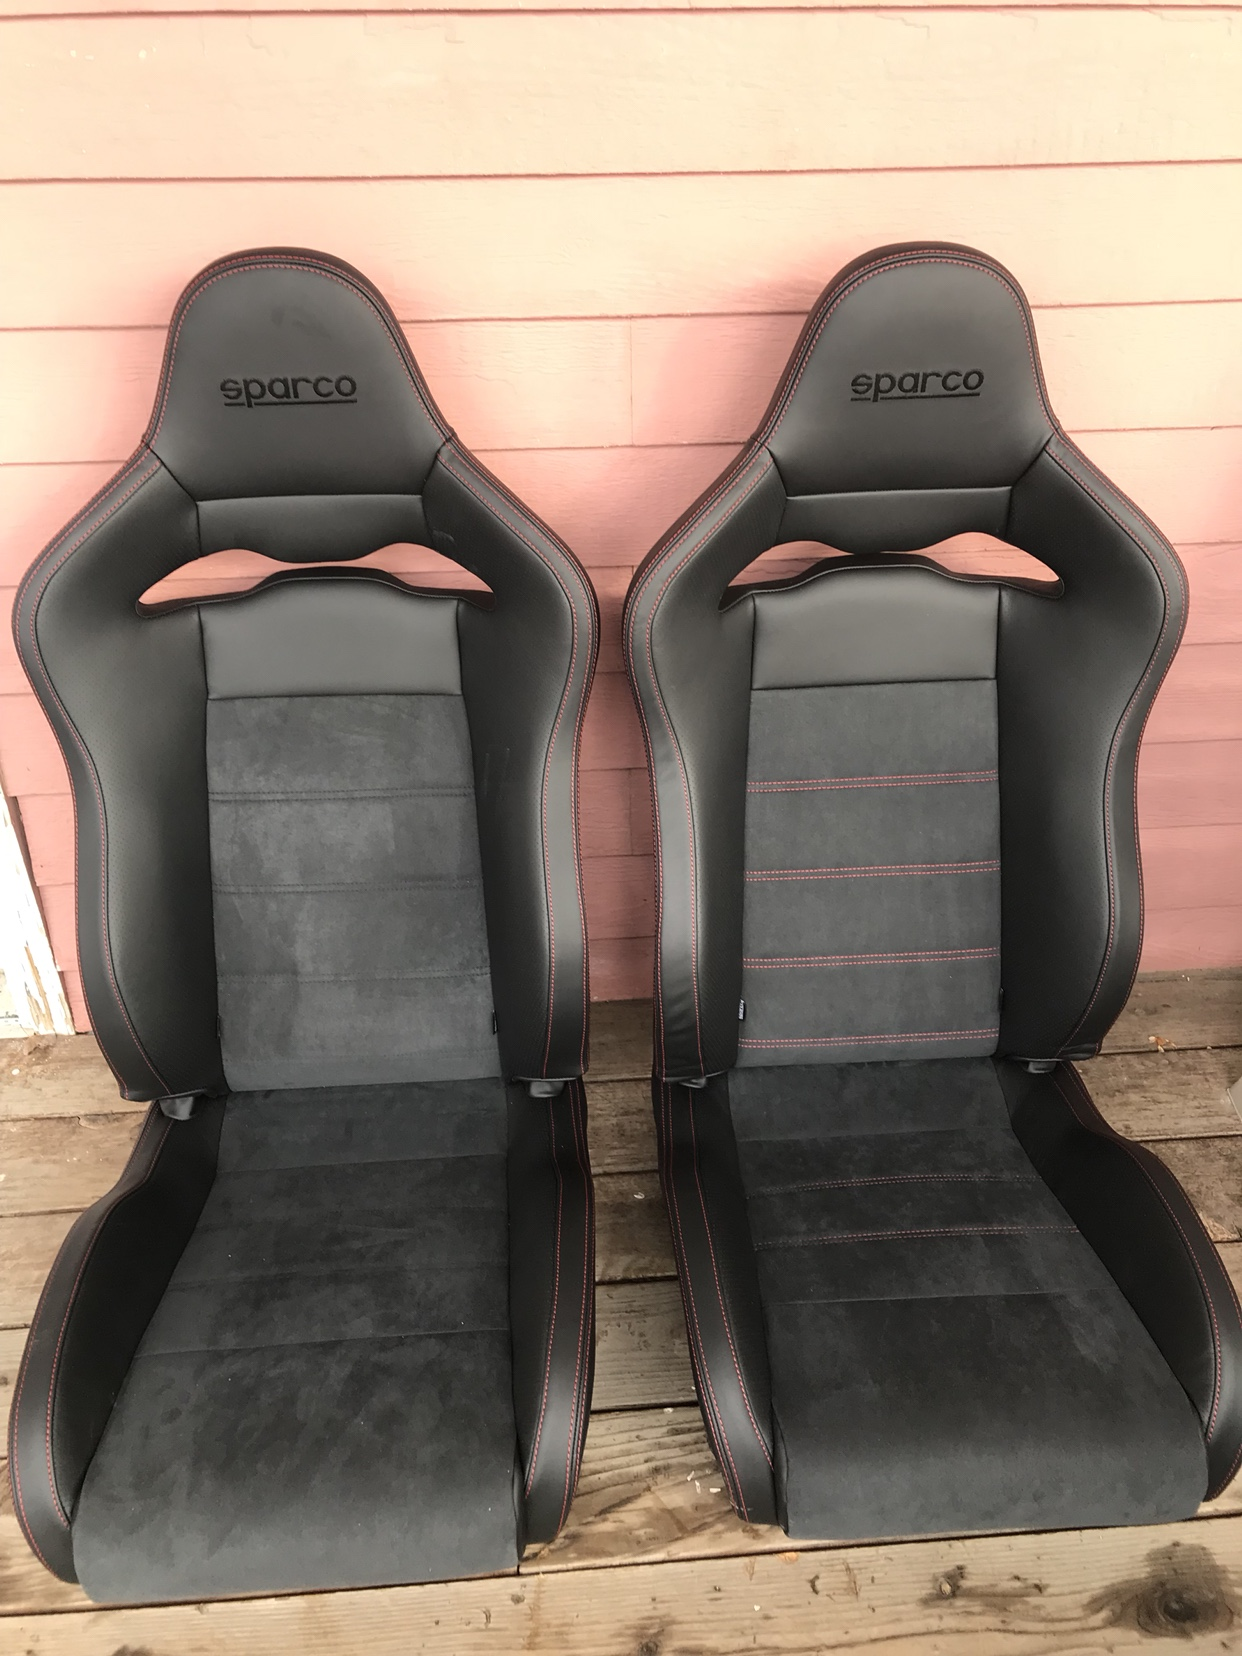 Sparco Spx Competition Seats Alfa Romeo 4c Forums